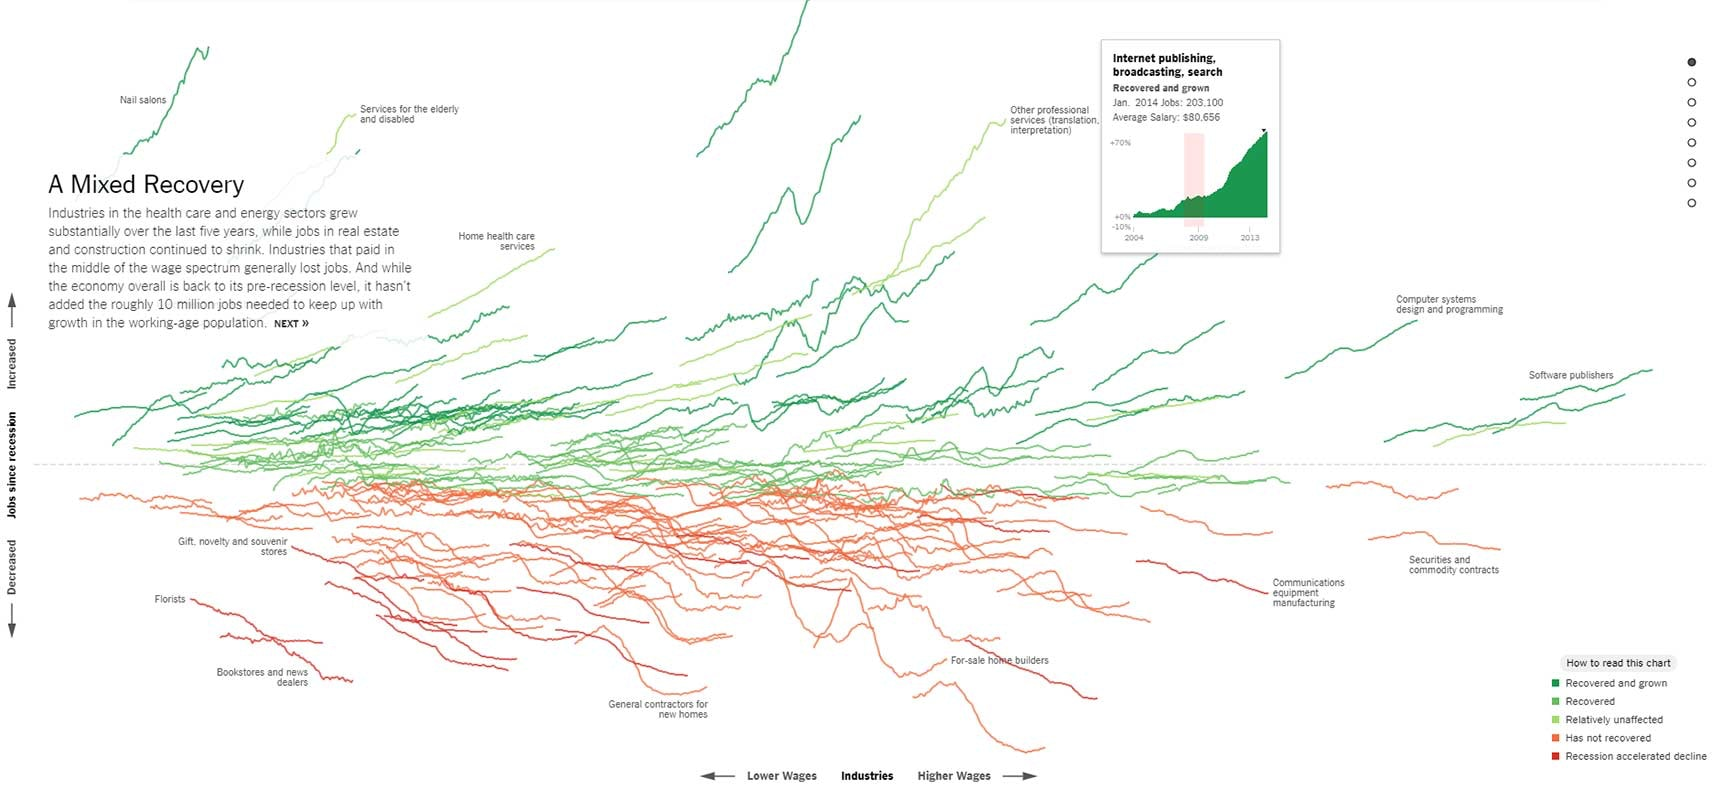 Data visualization showing how different industries performed after the Great Recession in the US.